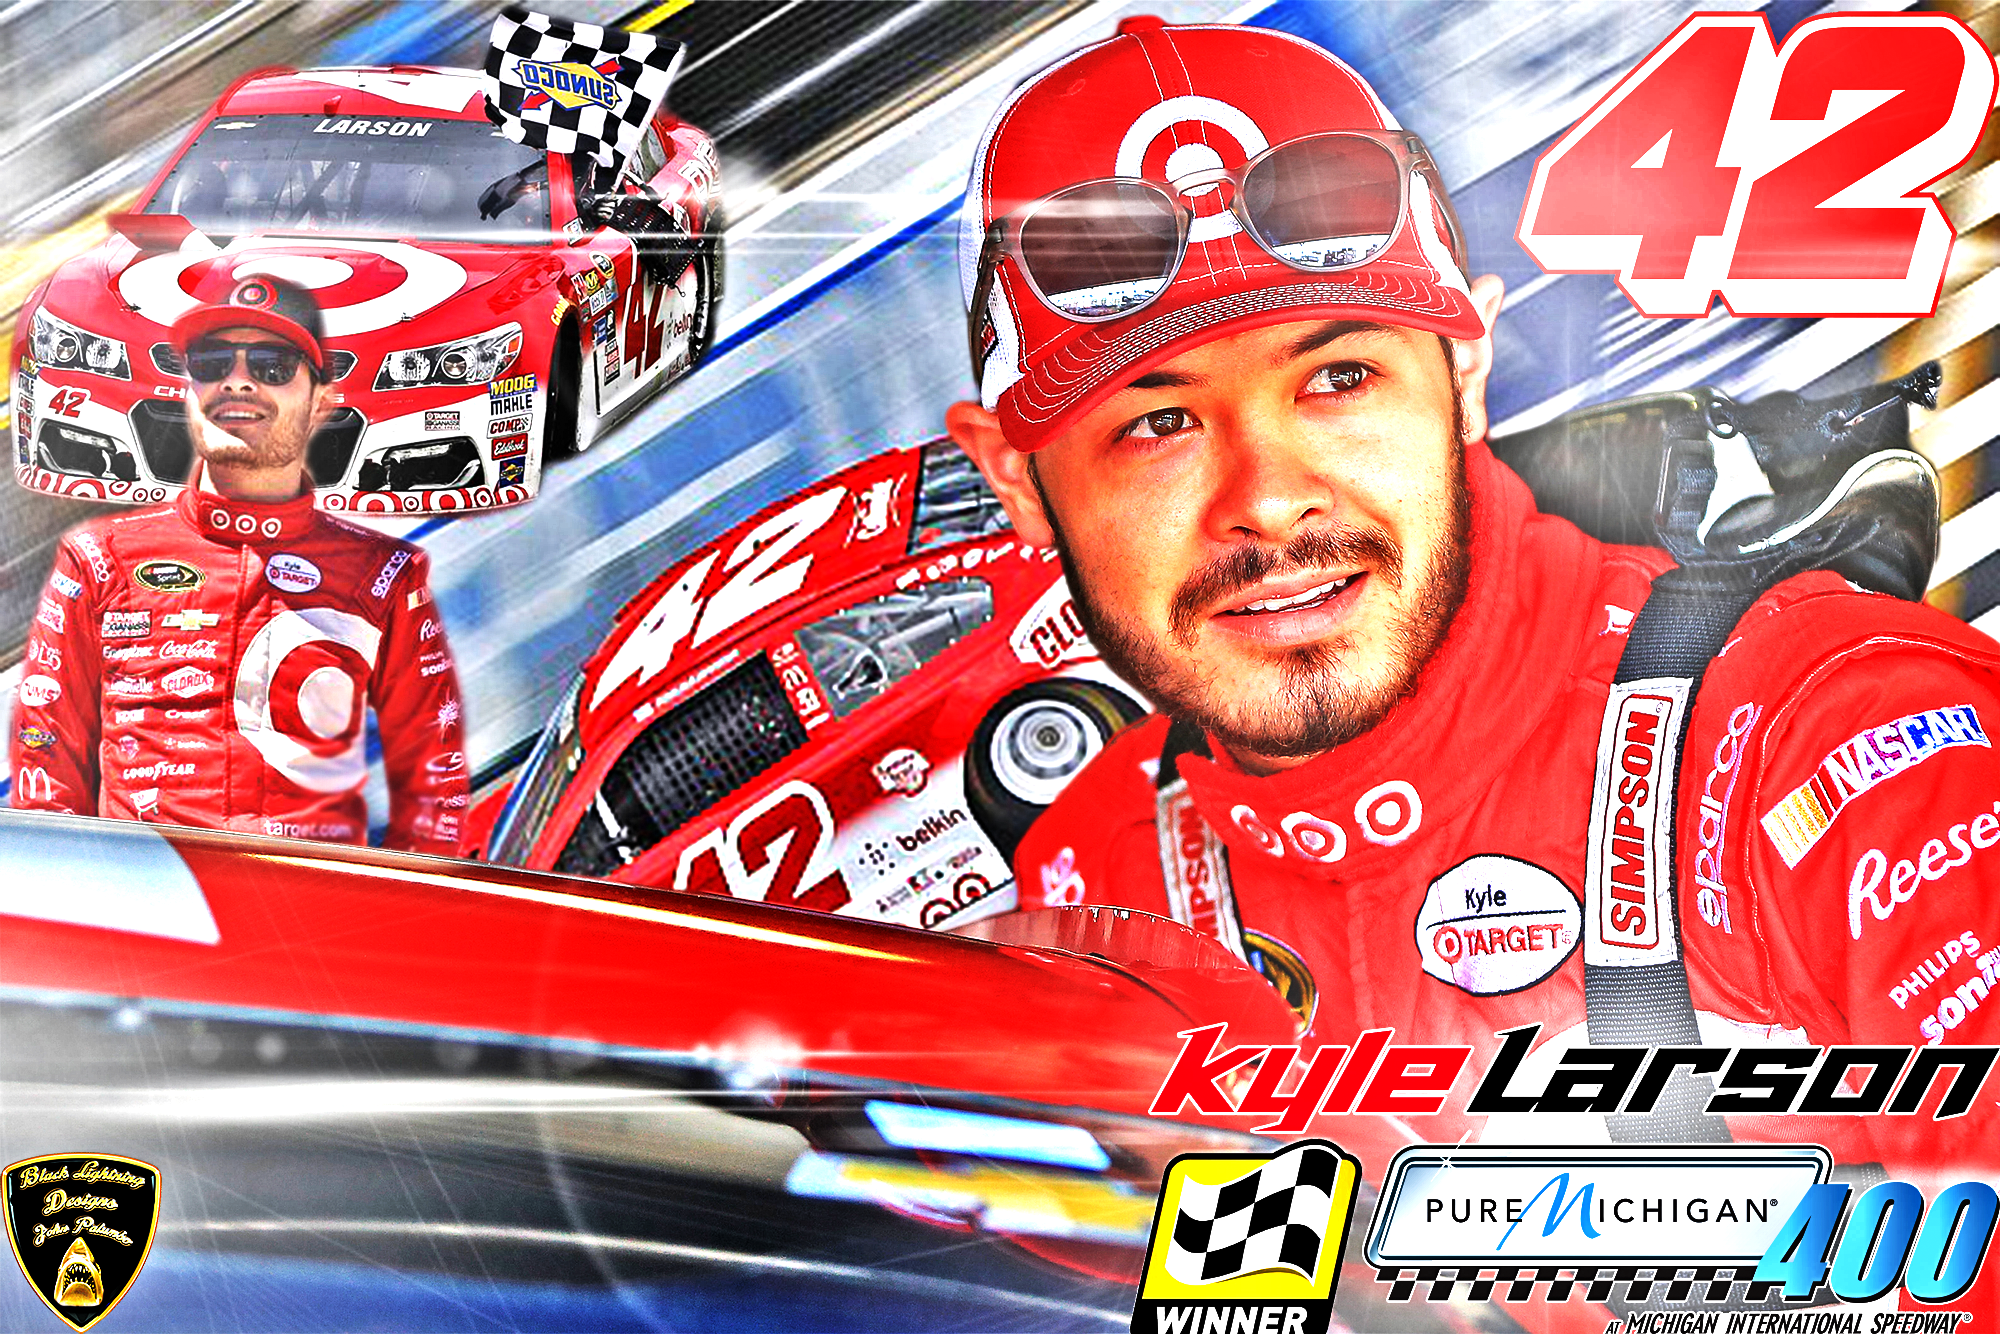 I Made This Awesome Cover Wallpaper Winning Picture Of Kyle Larson Hope Everyone